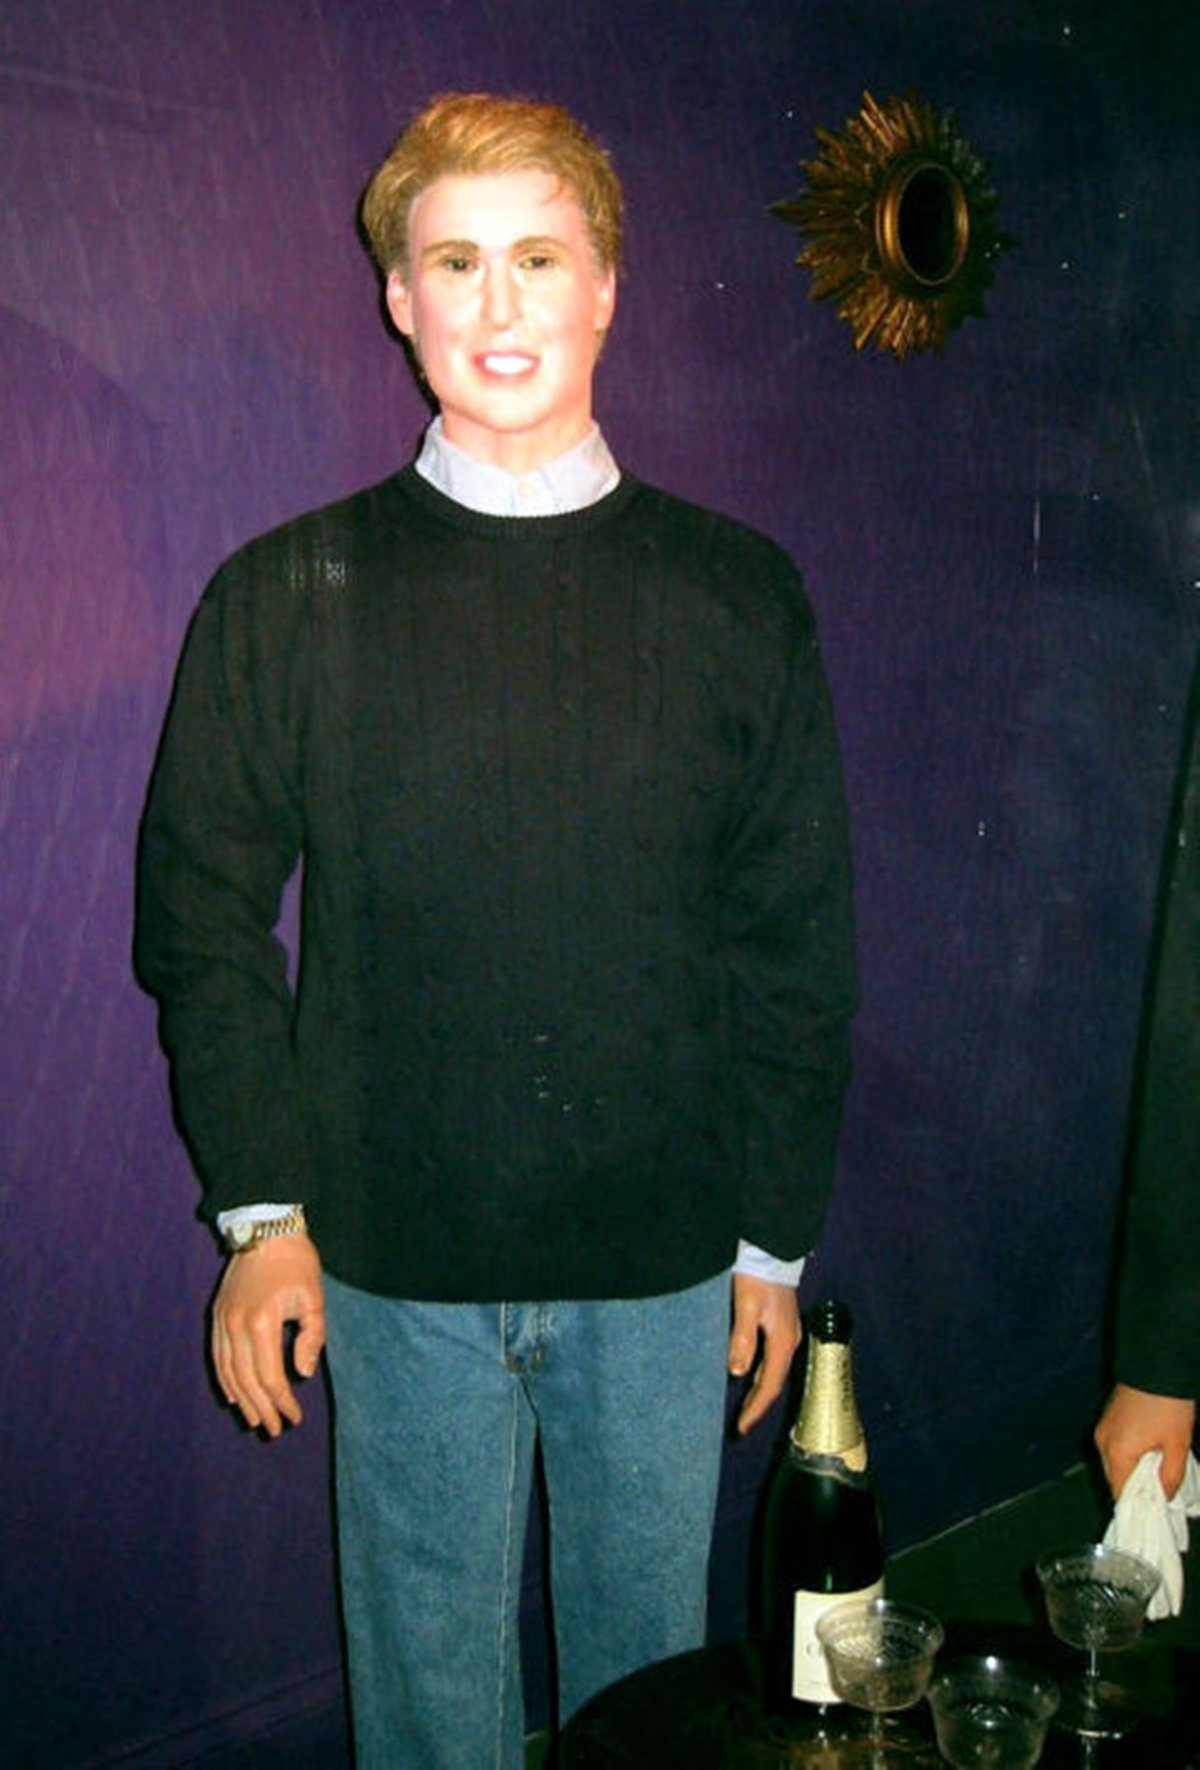 3 12 The 16 Worst Celebrity Waxworks Of All Time